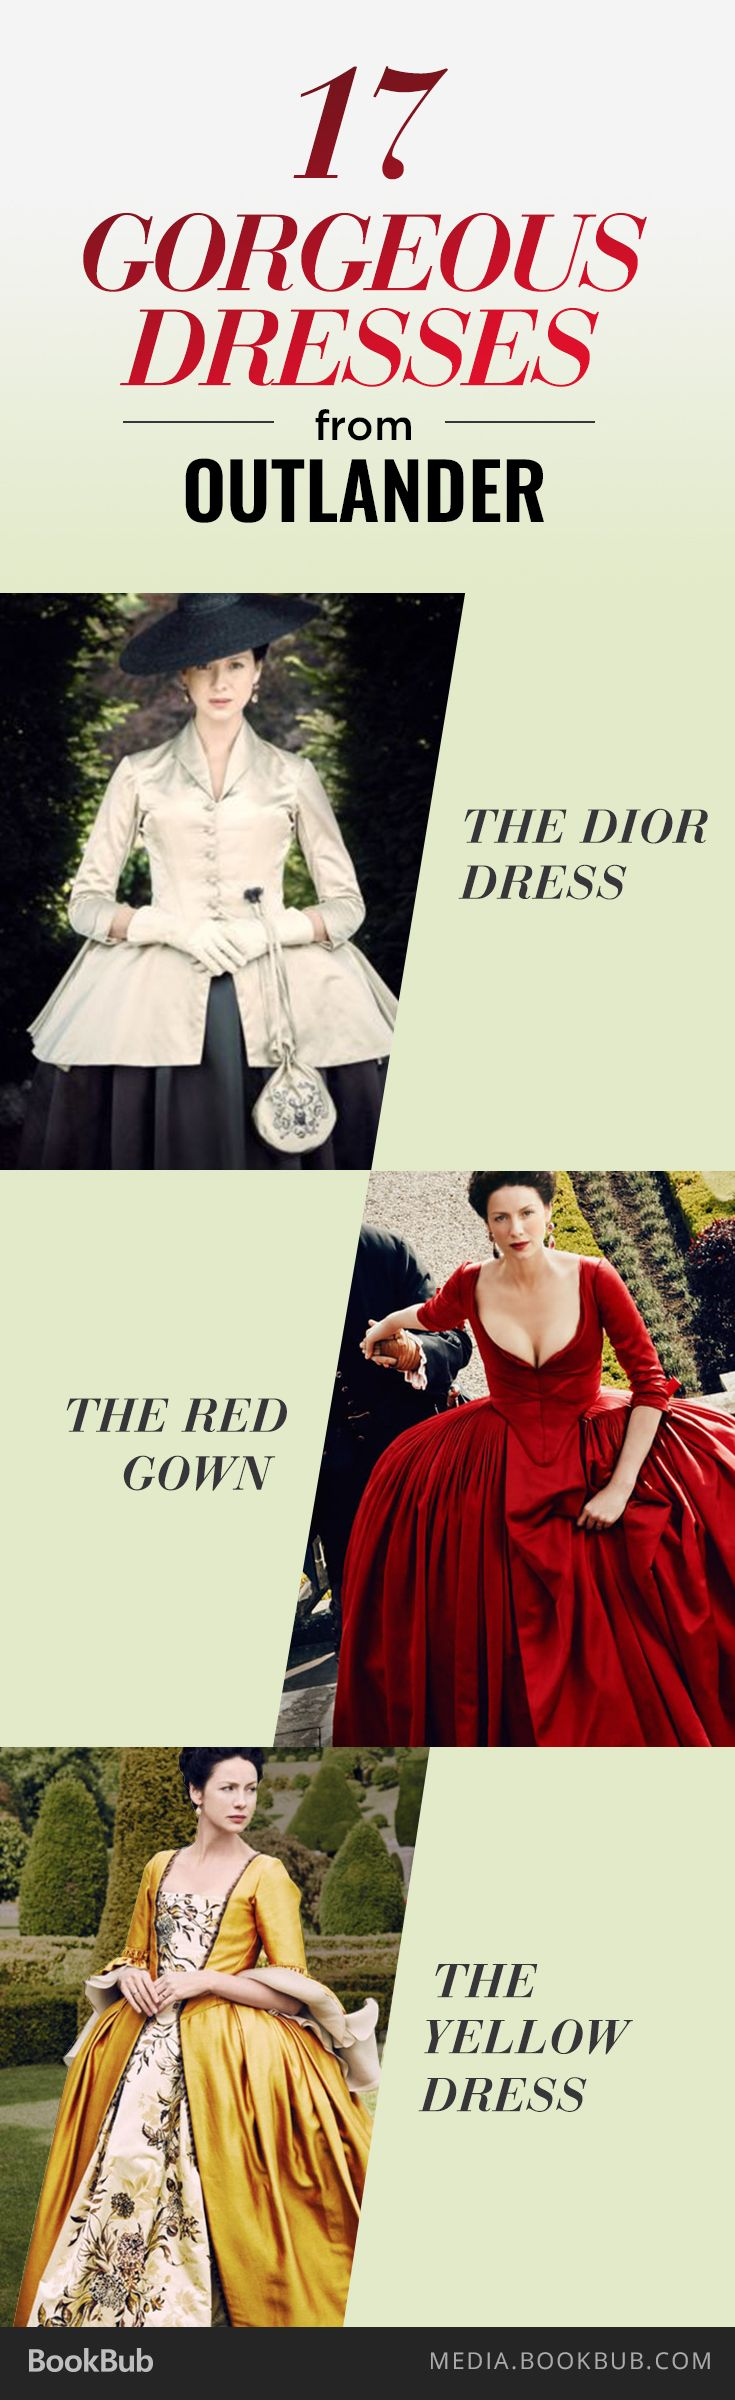 The 17 most gorgeous dresses from Outlander season 2.                                                                                                                                                                                 More